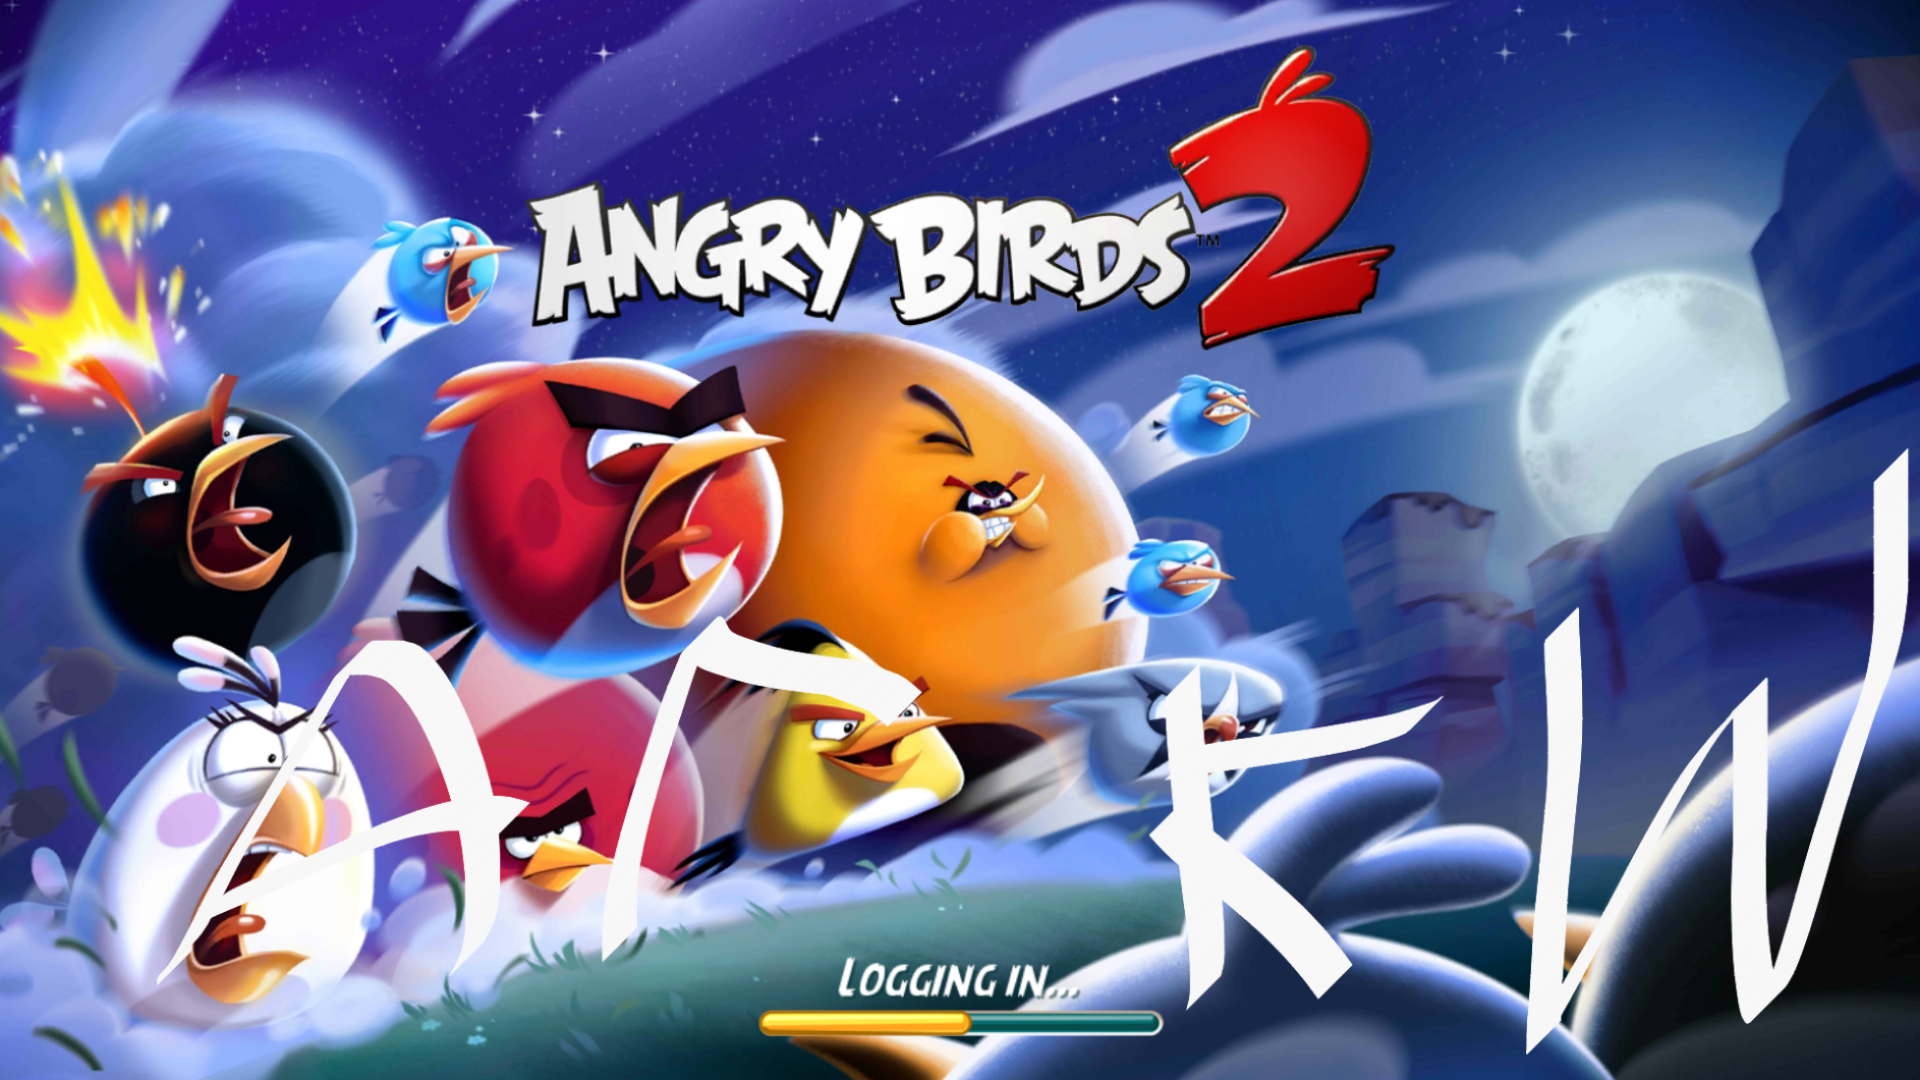 ArkW1: Angry Birds 2: Level 1 (Android) 164,745 points on 2019-05-19 10:24:08